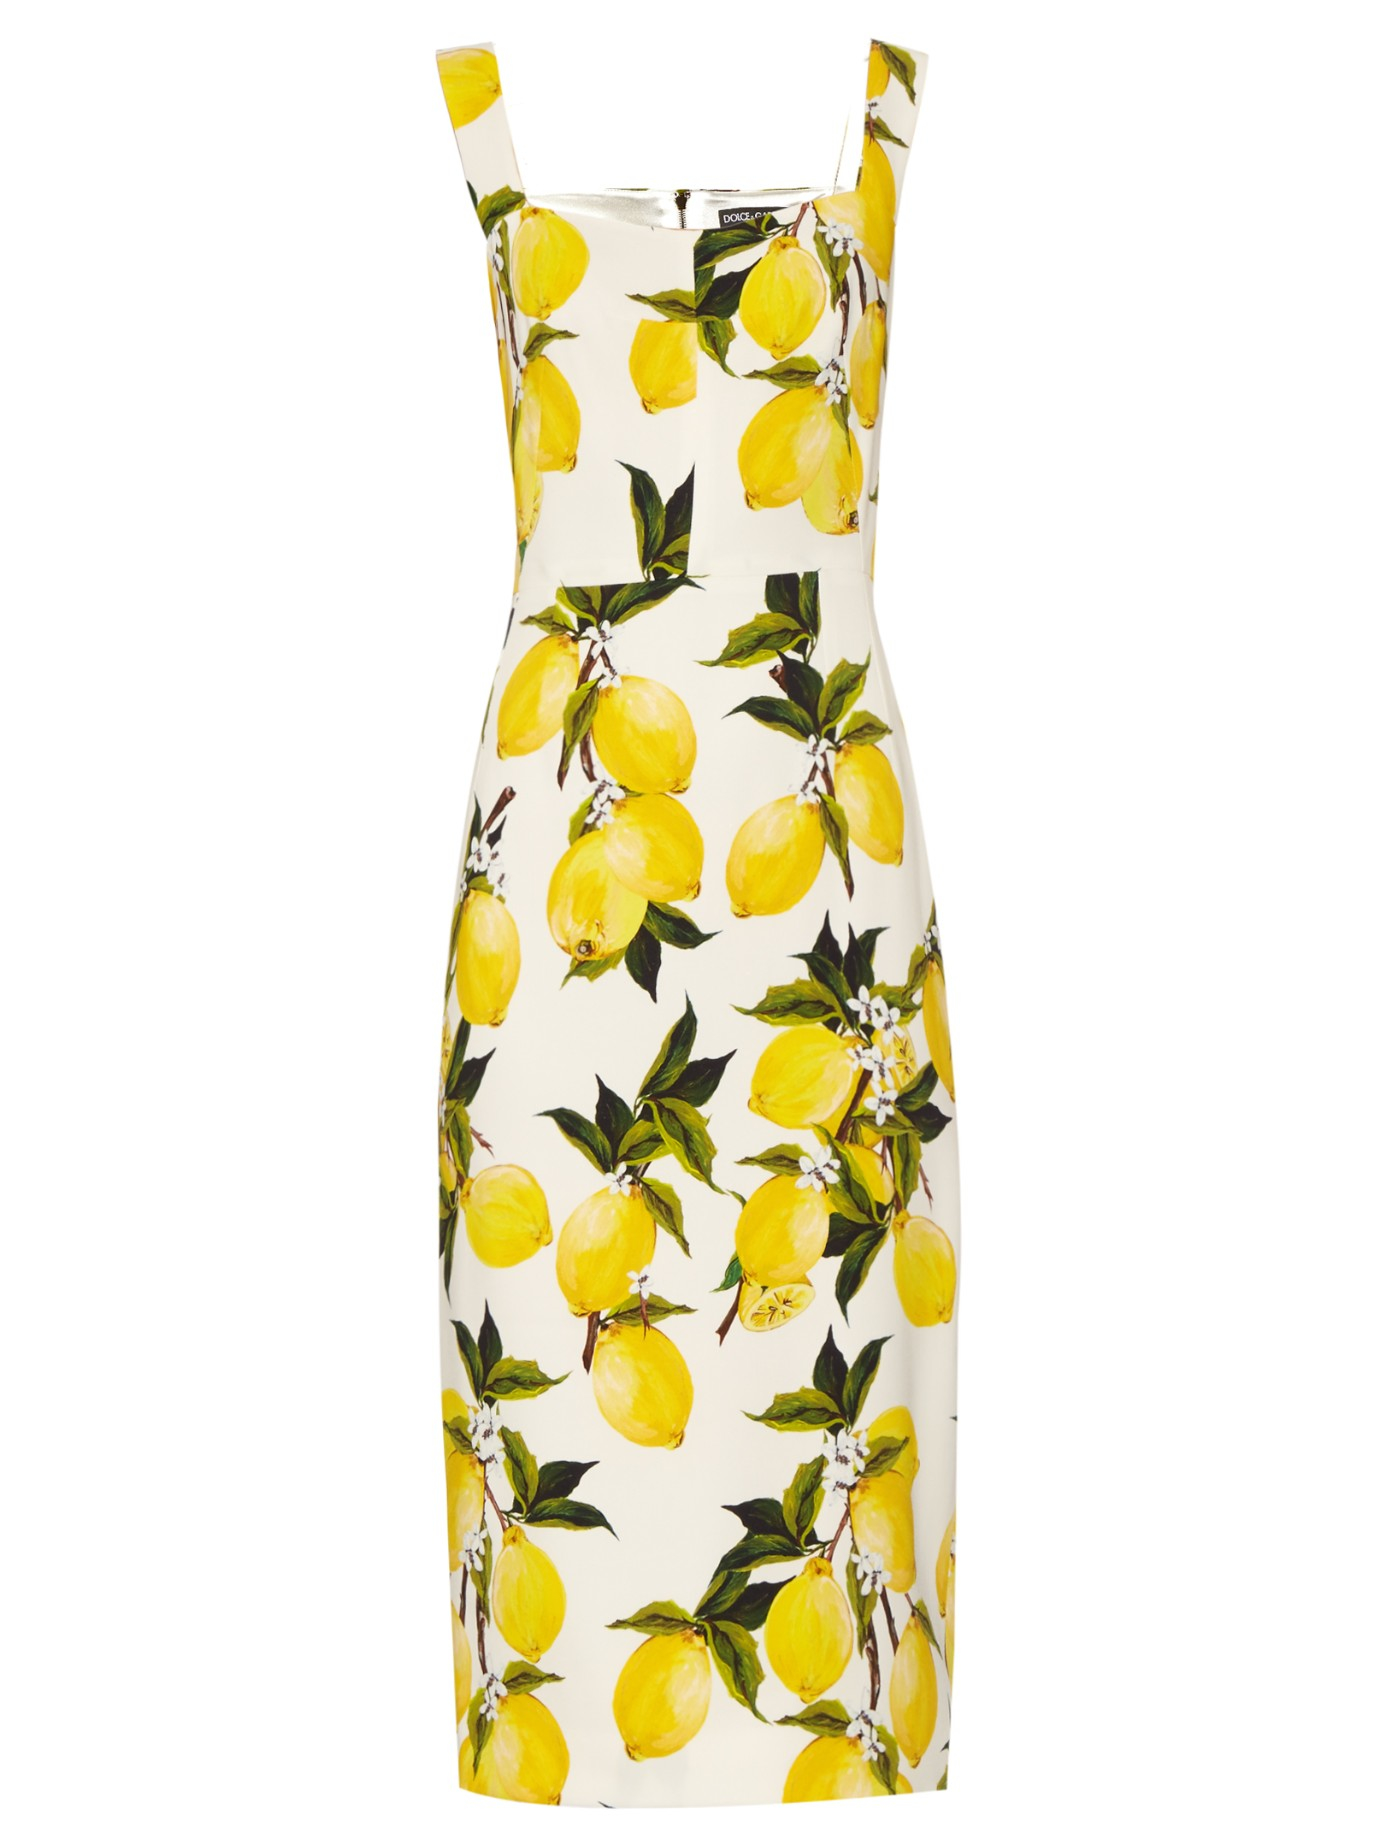 Lyst - Dolce   Gabbana Lemon-print Crepe Dress in Yellow 85407a10e40aa